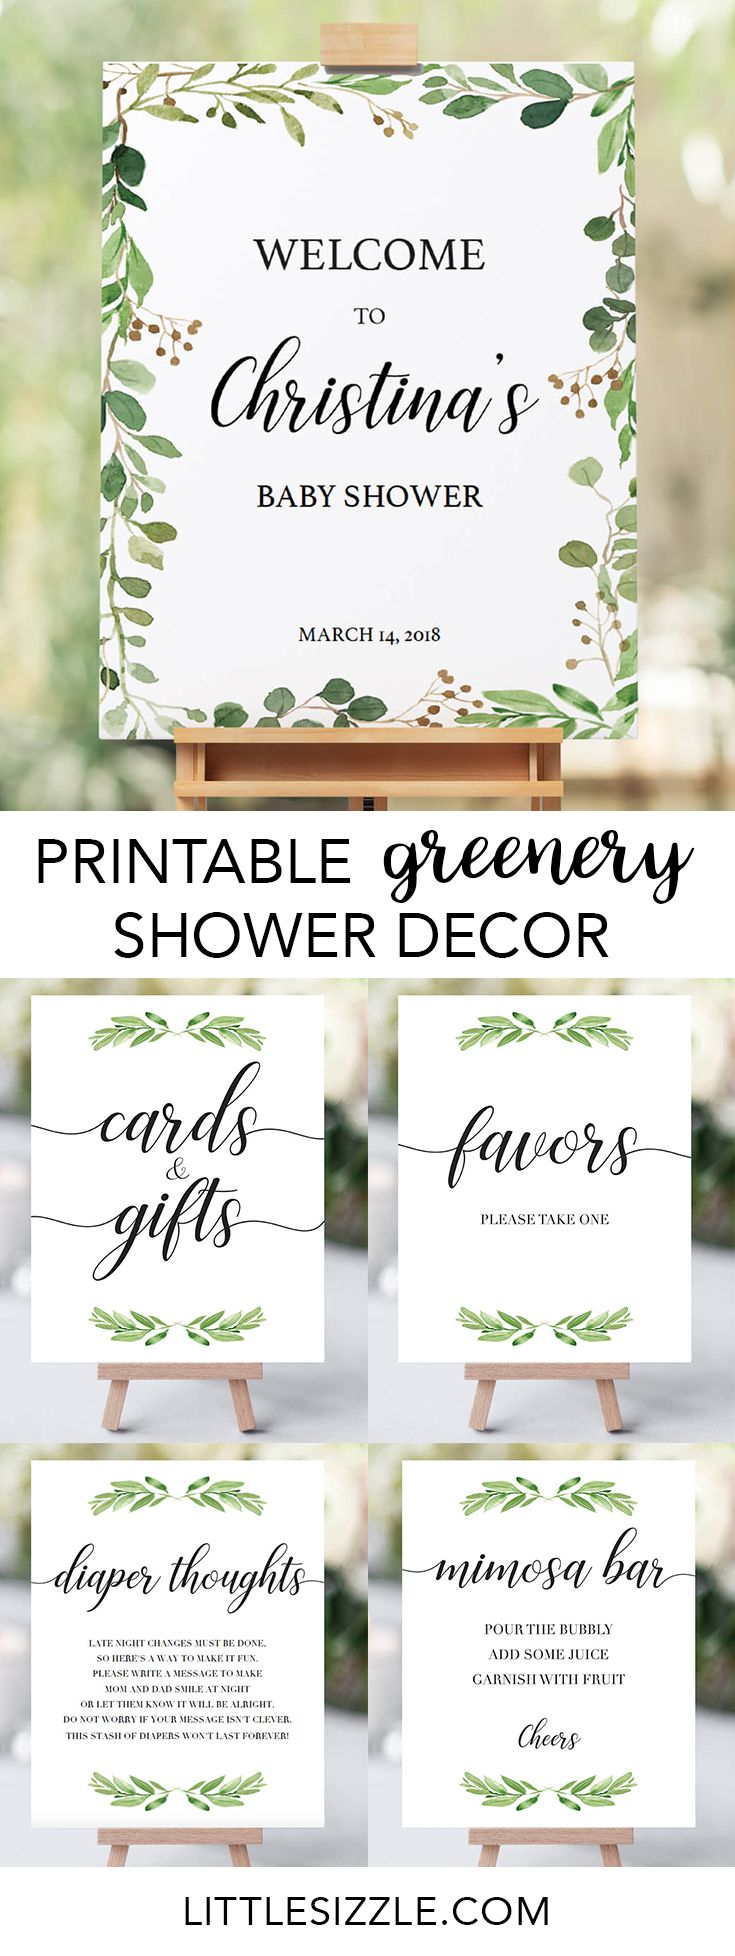 Greenery baby shower ideas by LittleSizzle. Printable green shower decor for your neutral baby shower. These greenery shower decorations with gorgeous watercolor leaves are perfect for any boho or botanical themed shower. With these greenery DIY signs, you will add a really great touch to any green baby shower. This neutral baby shower decor package includes the following shower signs: Welcome sign, Mimosa Bar sign, Favors sign, Cards and Gifts sign. #DIY #printable #showerdecor #greenery